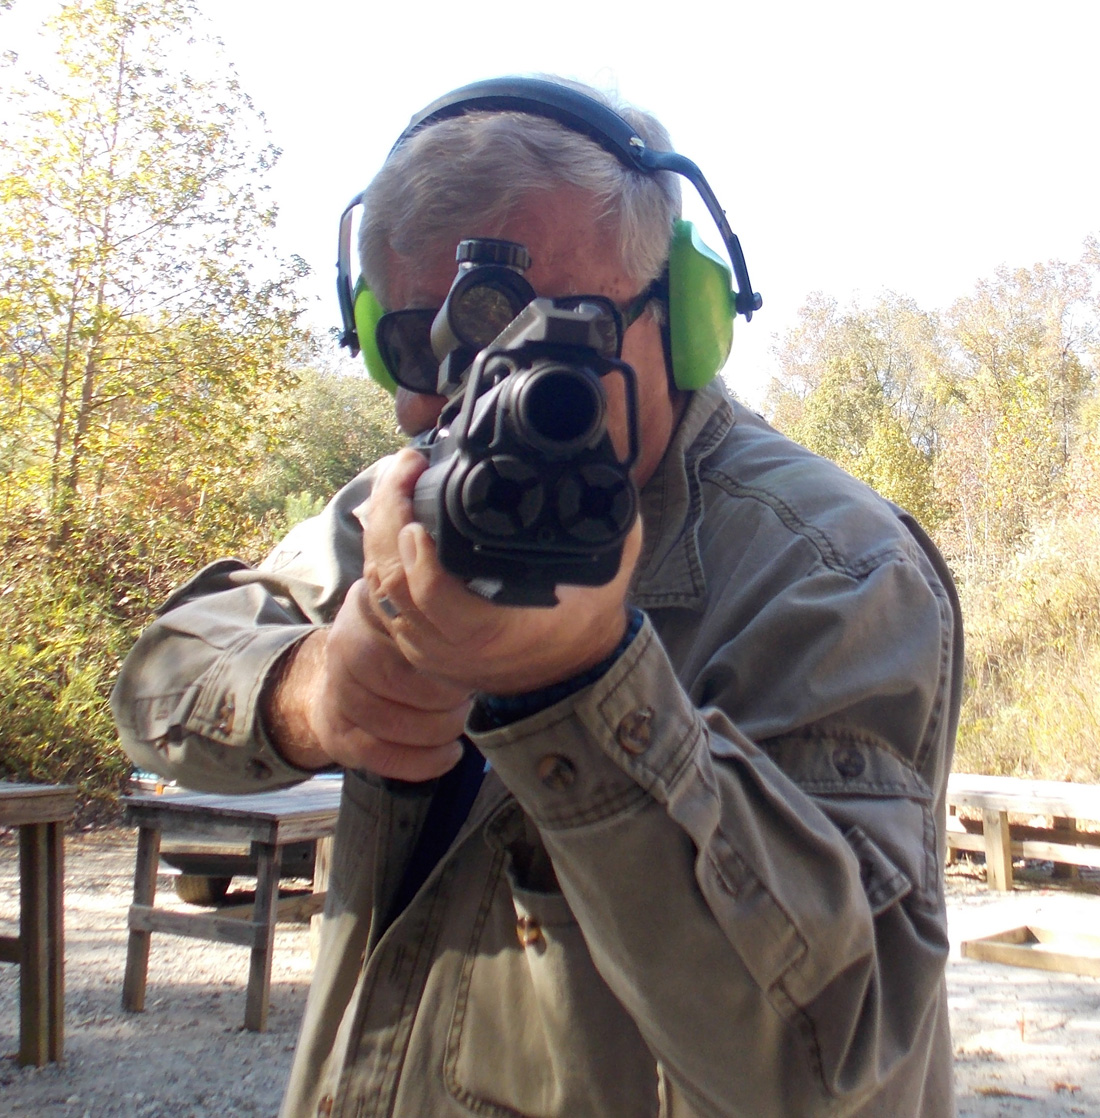 Author Bob Campbell shooting the Kel-Tec KSG with TruGlo sight - front